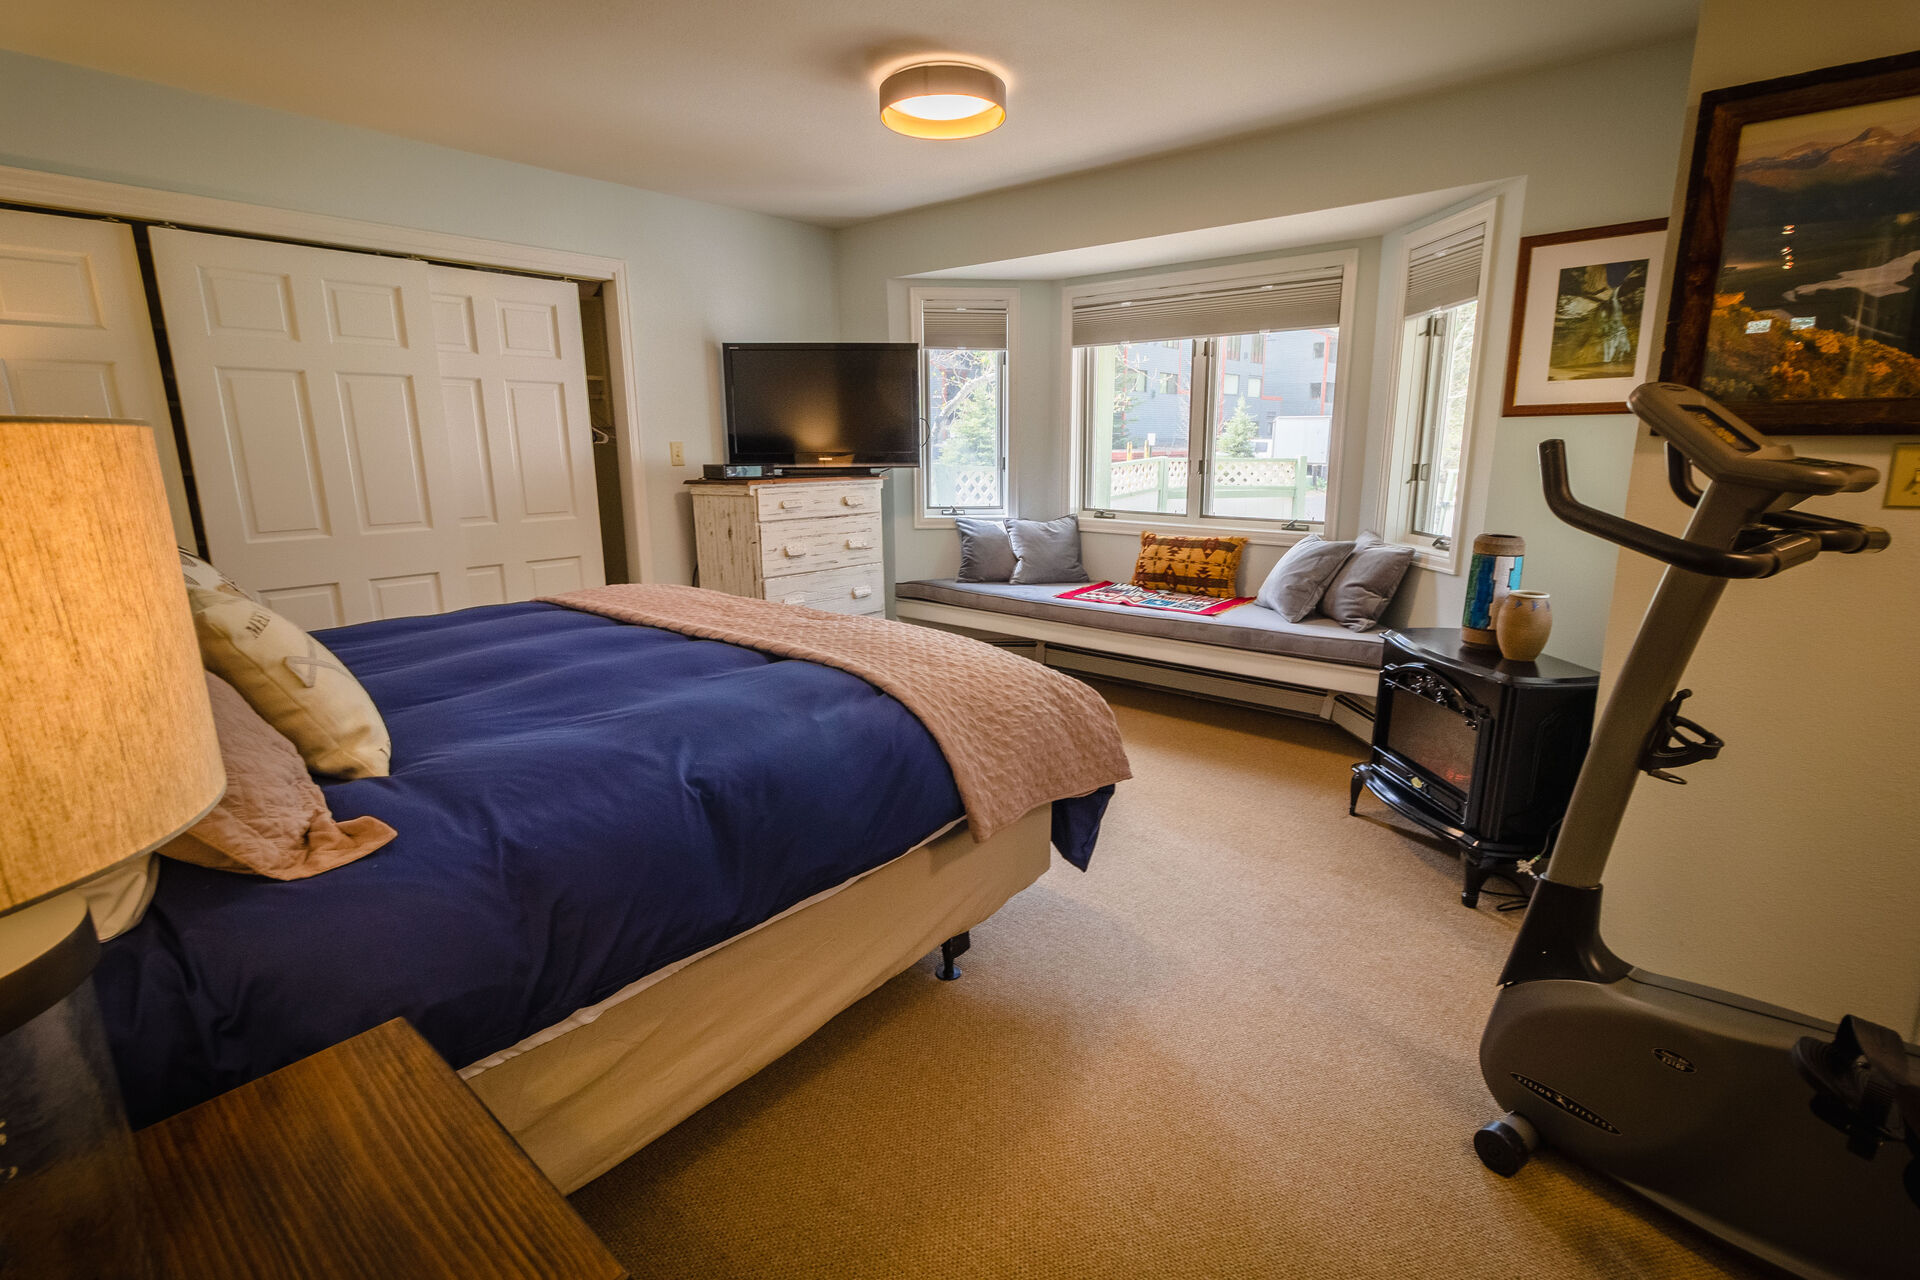 Bedroom with Full bed and Window Seating